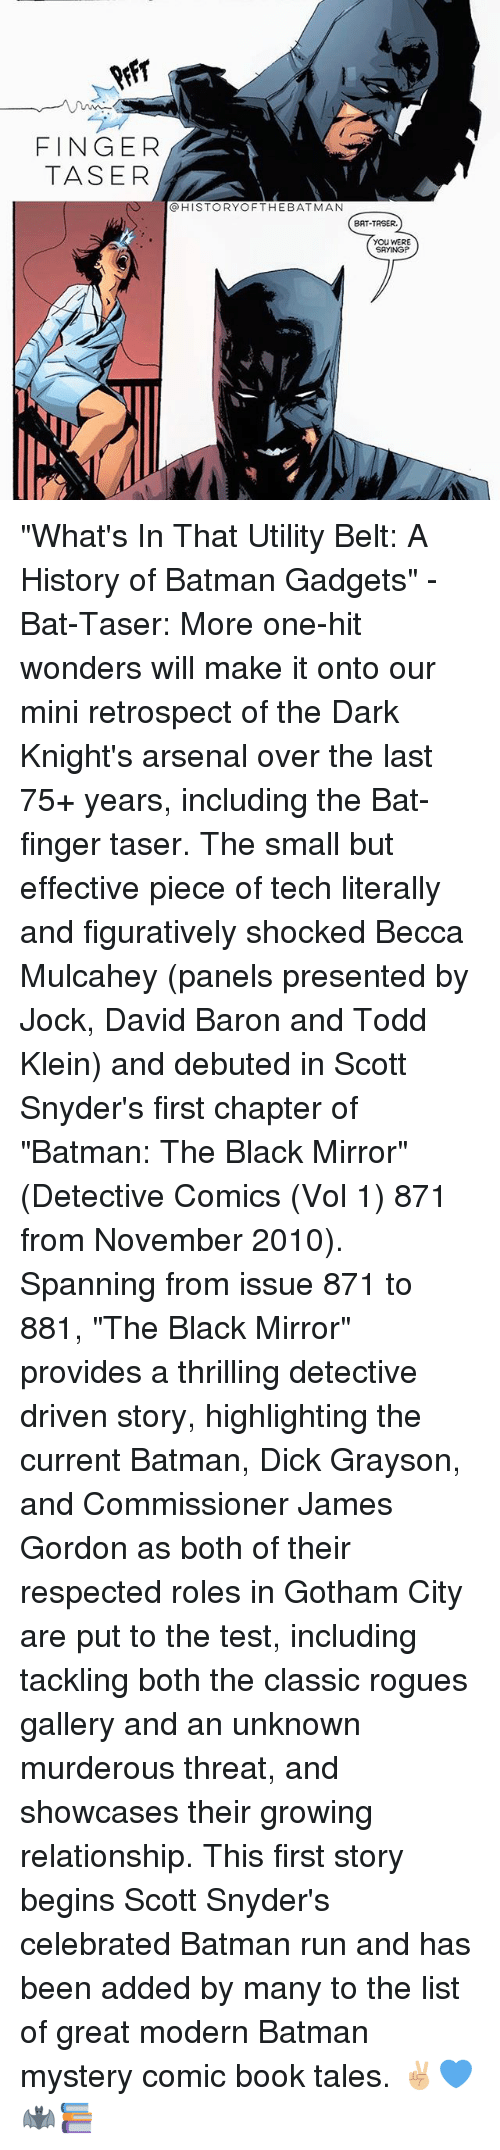 "Arsenal, Batman, and Memes: FINGER  TASER  @HISTORYOFTHEBATMAN  BAT-TASER.  YOU WERE  SAYING ""What's In That Utility Belt: A History of Batman Gadgets"" - Bat-Taser: More one-hit wonders will make it onto our mini retrospect of the Dark Knight's arsenal over the last 75+ years, including the Bat-finger taser. The small but effective piece of tech literally and figuratively shocked Becca Mulcahey (panels presented by Jock, David Baron and Todd Klein) and debuted in Scott Snyder's first chapter of ""Batman: The Black Mirror"" (Detective Comics (Vol 1) 871 from November 2010). Spanning from issue 871 to 881, ""The Black Mirror"" provides a thrilling detective driven story, highlighting the current Batman, Dick Grayson, and Commissioner James Gordon as both of their respected roles in Gotham City are put to the test, including tackling both the classic rogues gallery and an unknown murderous threat, and showcases their growing relationship. This first story begins Scott Snyder's celebrated Batman run and has been added by many to the list of great modern Batman mystery comic book tales. ✌🏼💙🦇📚"